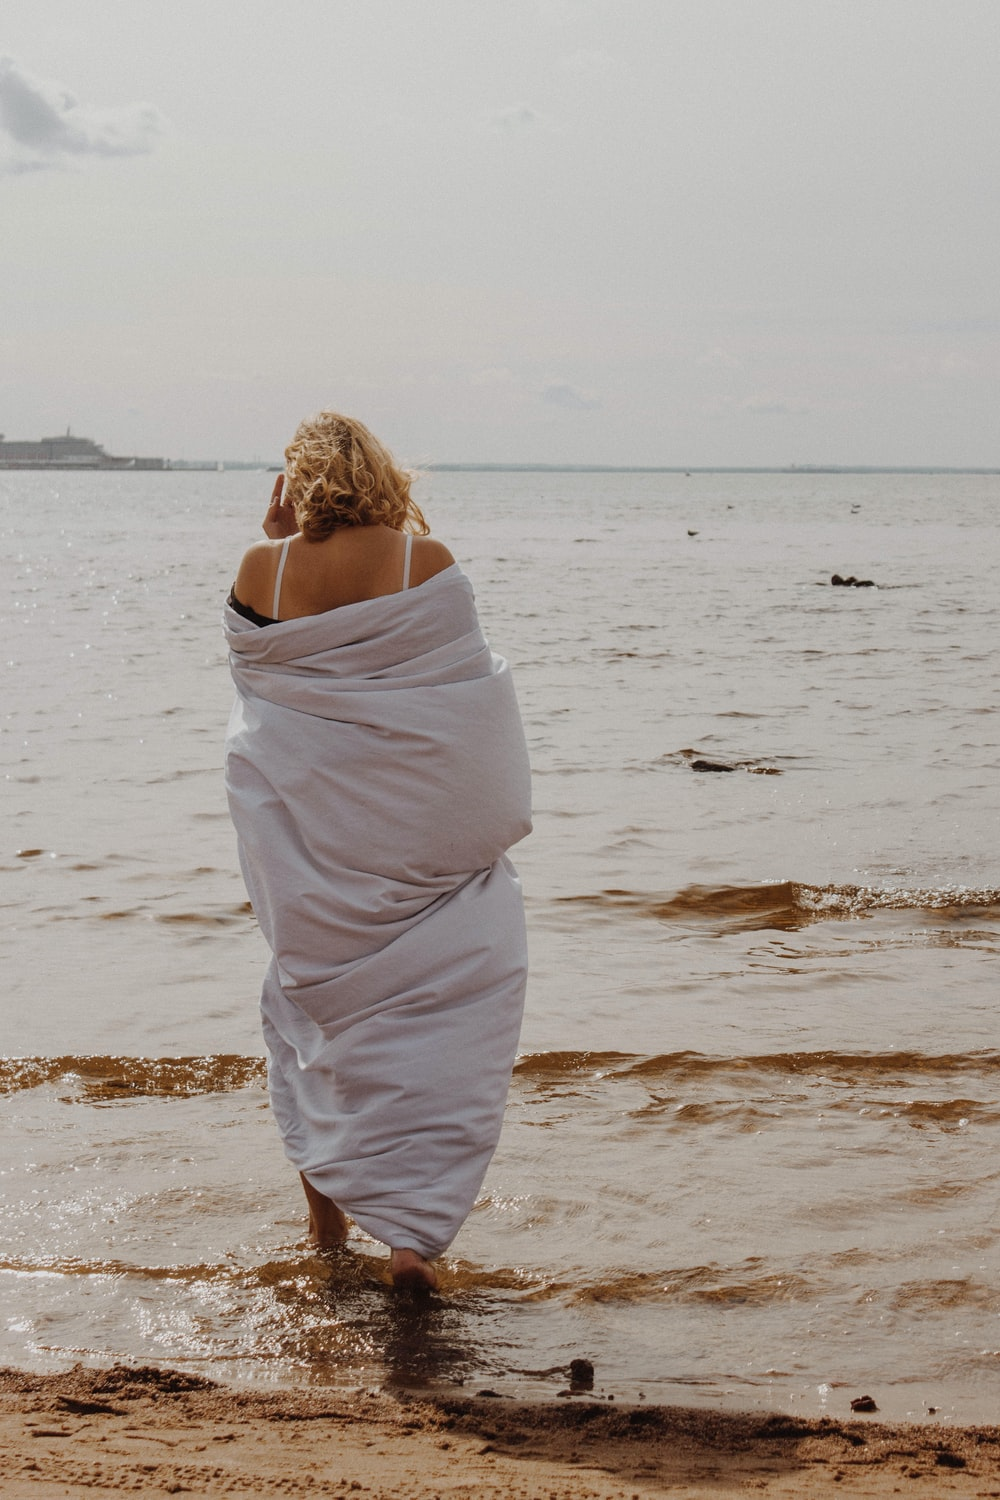 woman wrap her body with white blanket while walking at the beach